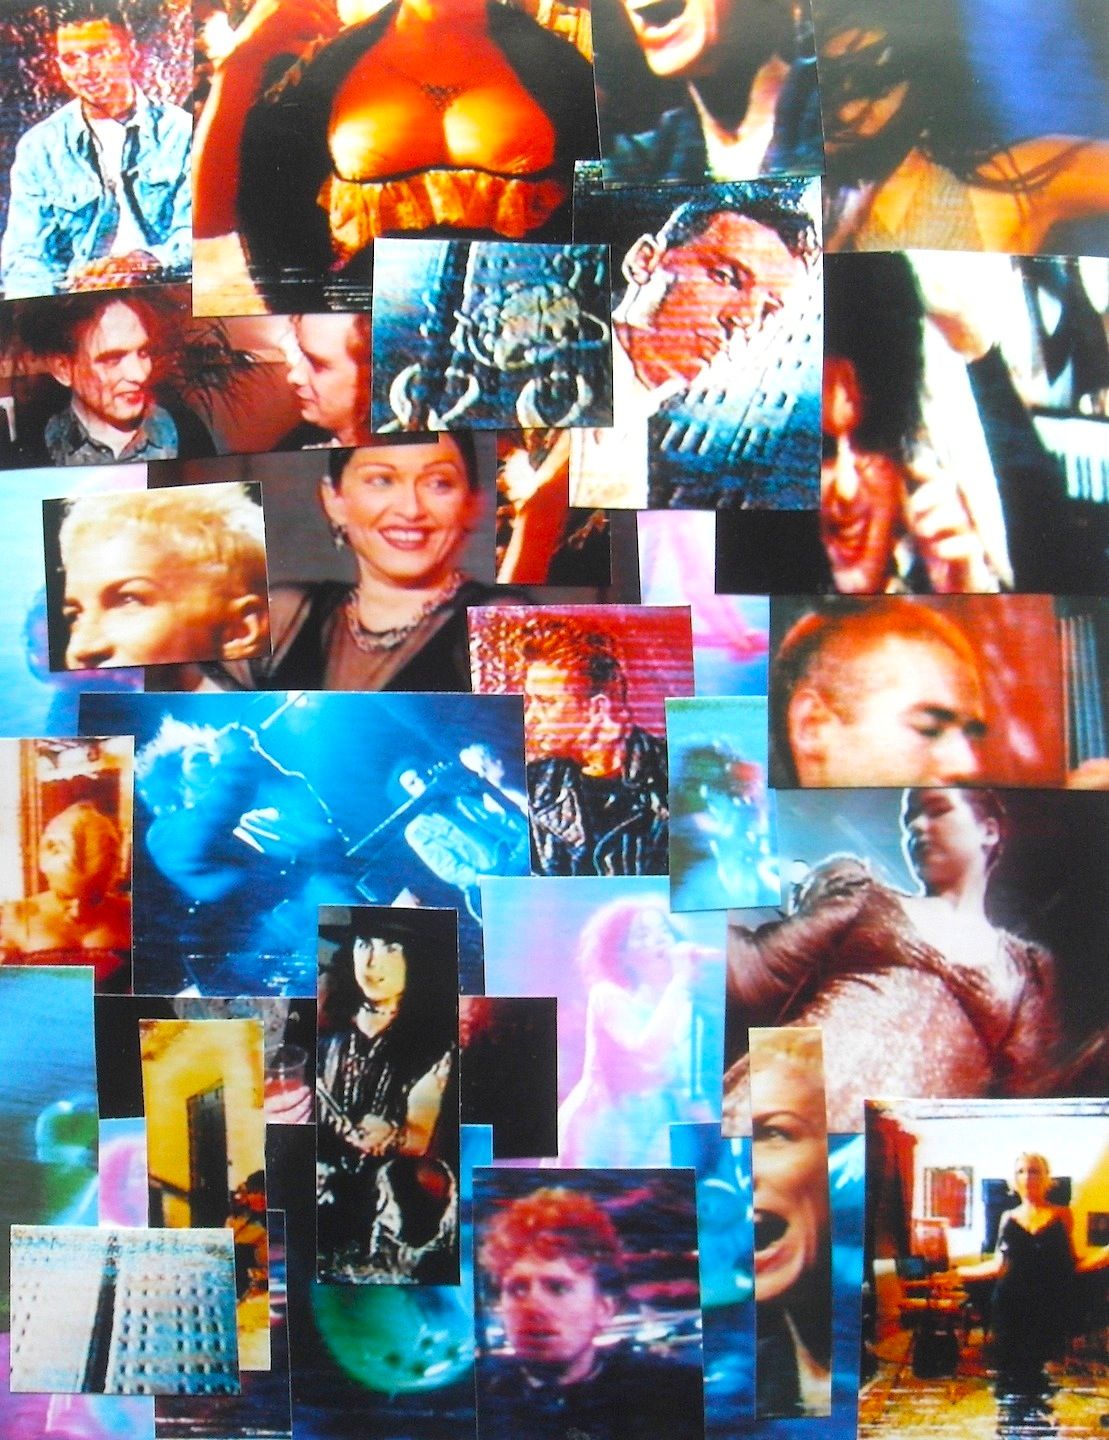 music in the 1980s 100 best songs of the 1970s by rebecca schiller apr 4, 2012 12:51 pm 1 images the 1970s were when icons were born with the groundwork for a new sense of aesthetic.